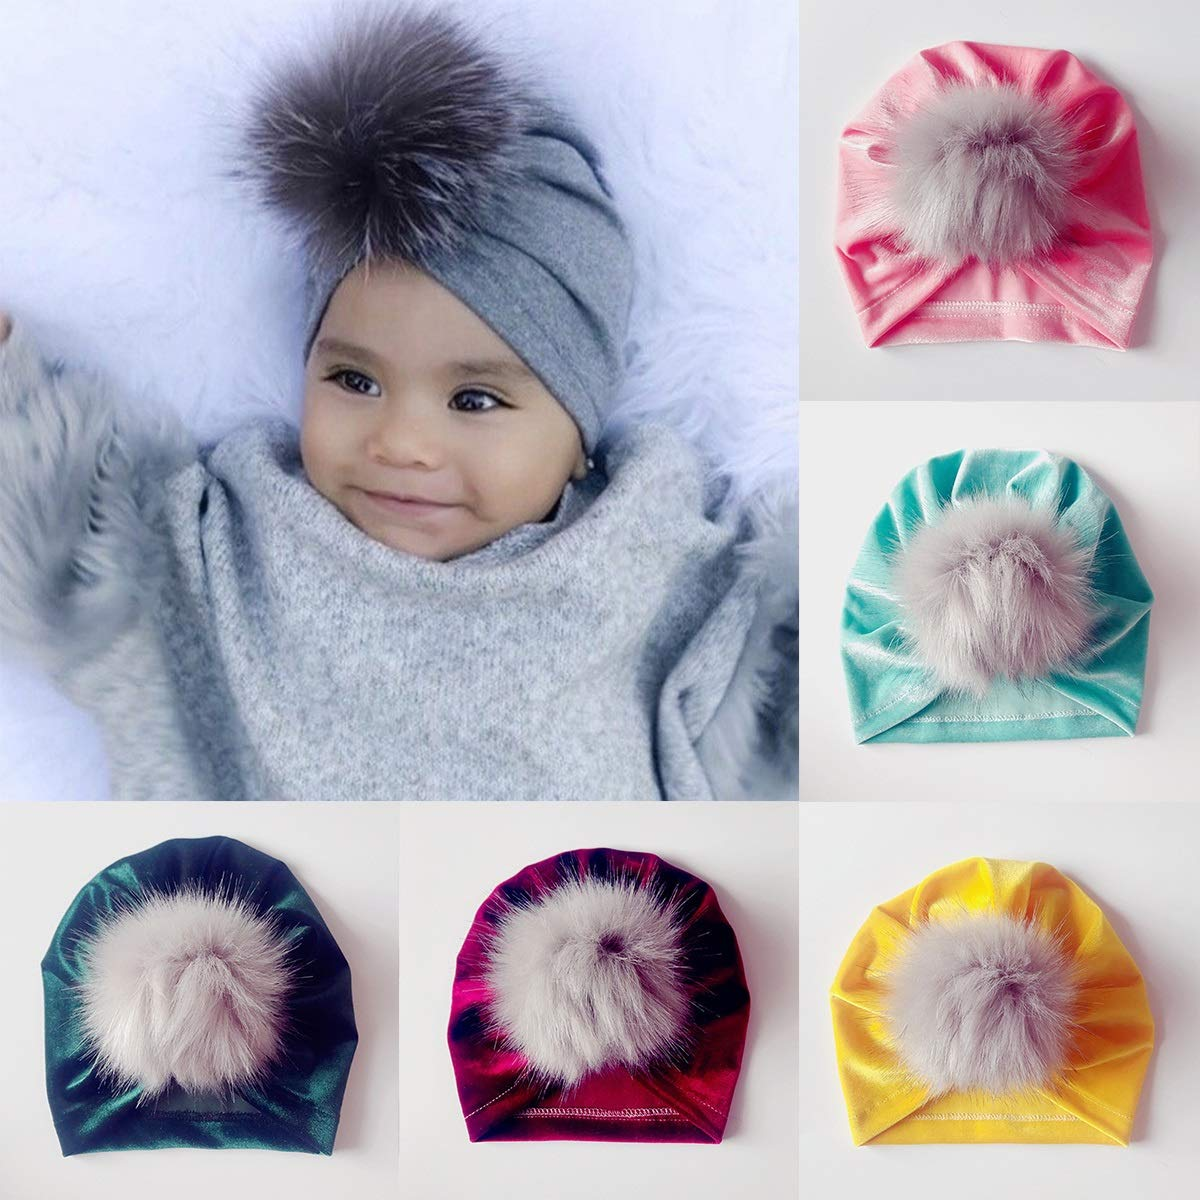 Infant Toddler Newborn Soft Stretchy Hat Winter Festival Warm Cap with Fuzzy Ball Color : Wine Red